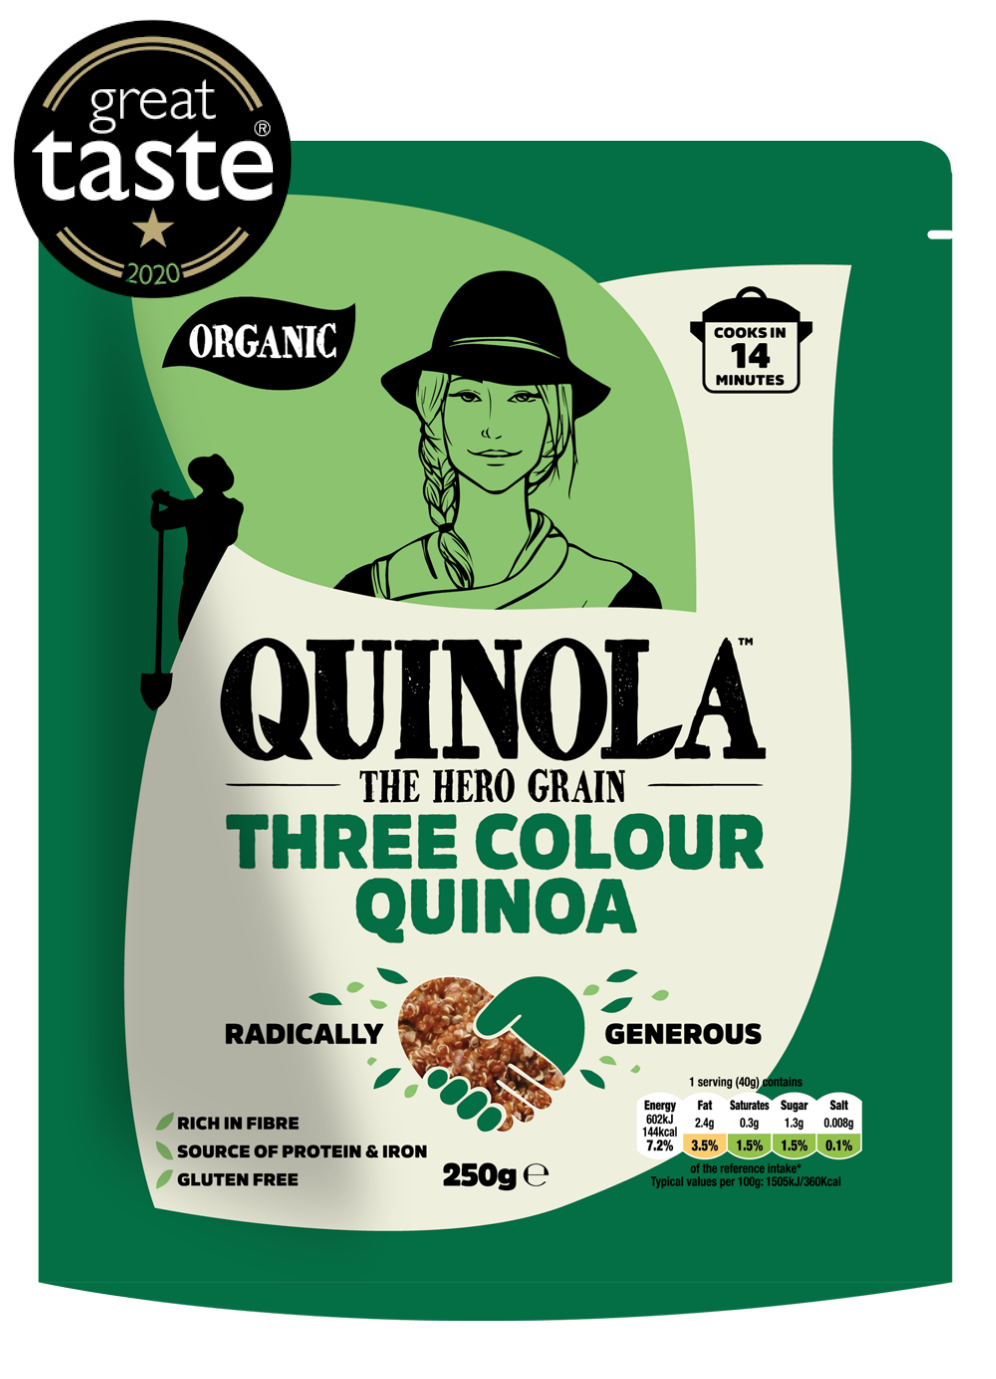 Three Colour Quinoa, Great Taste Award 2020 with 1 star